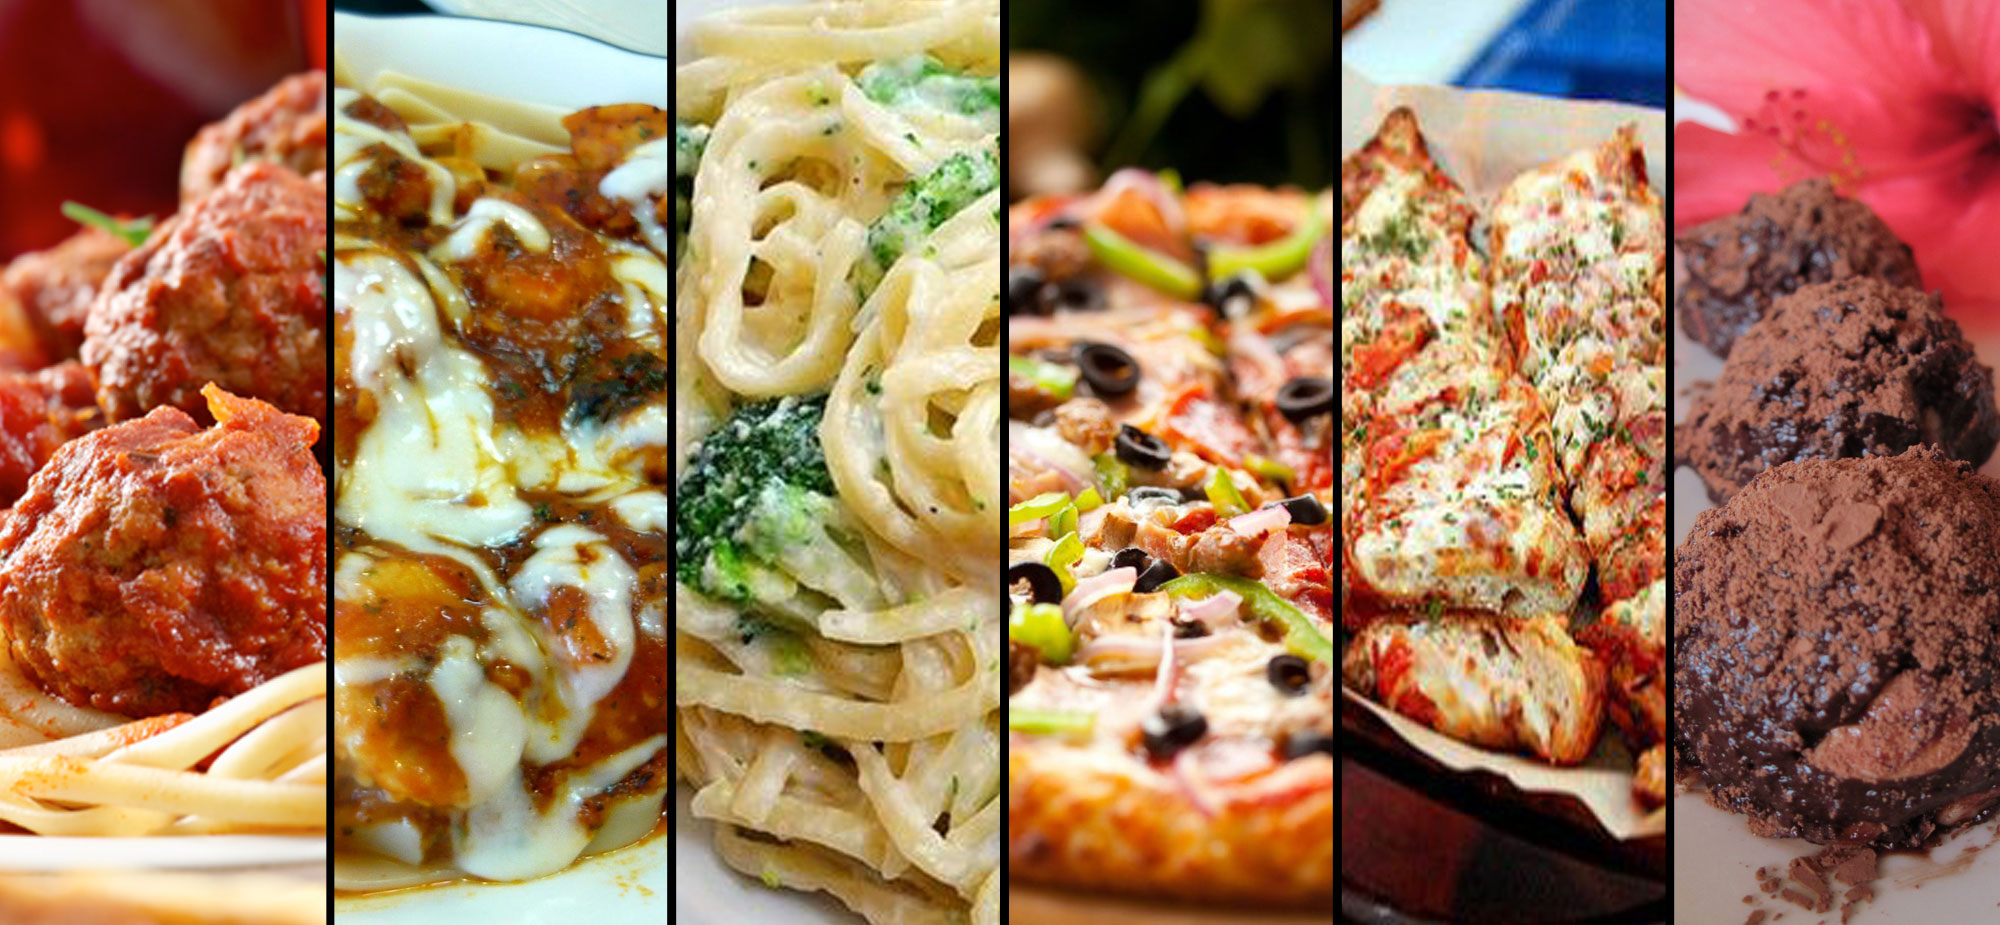 italian_foods_collage